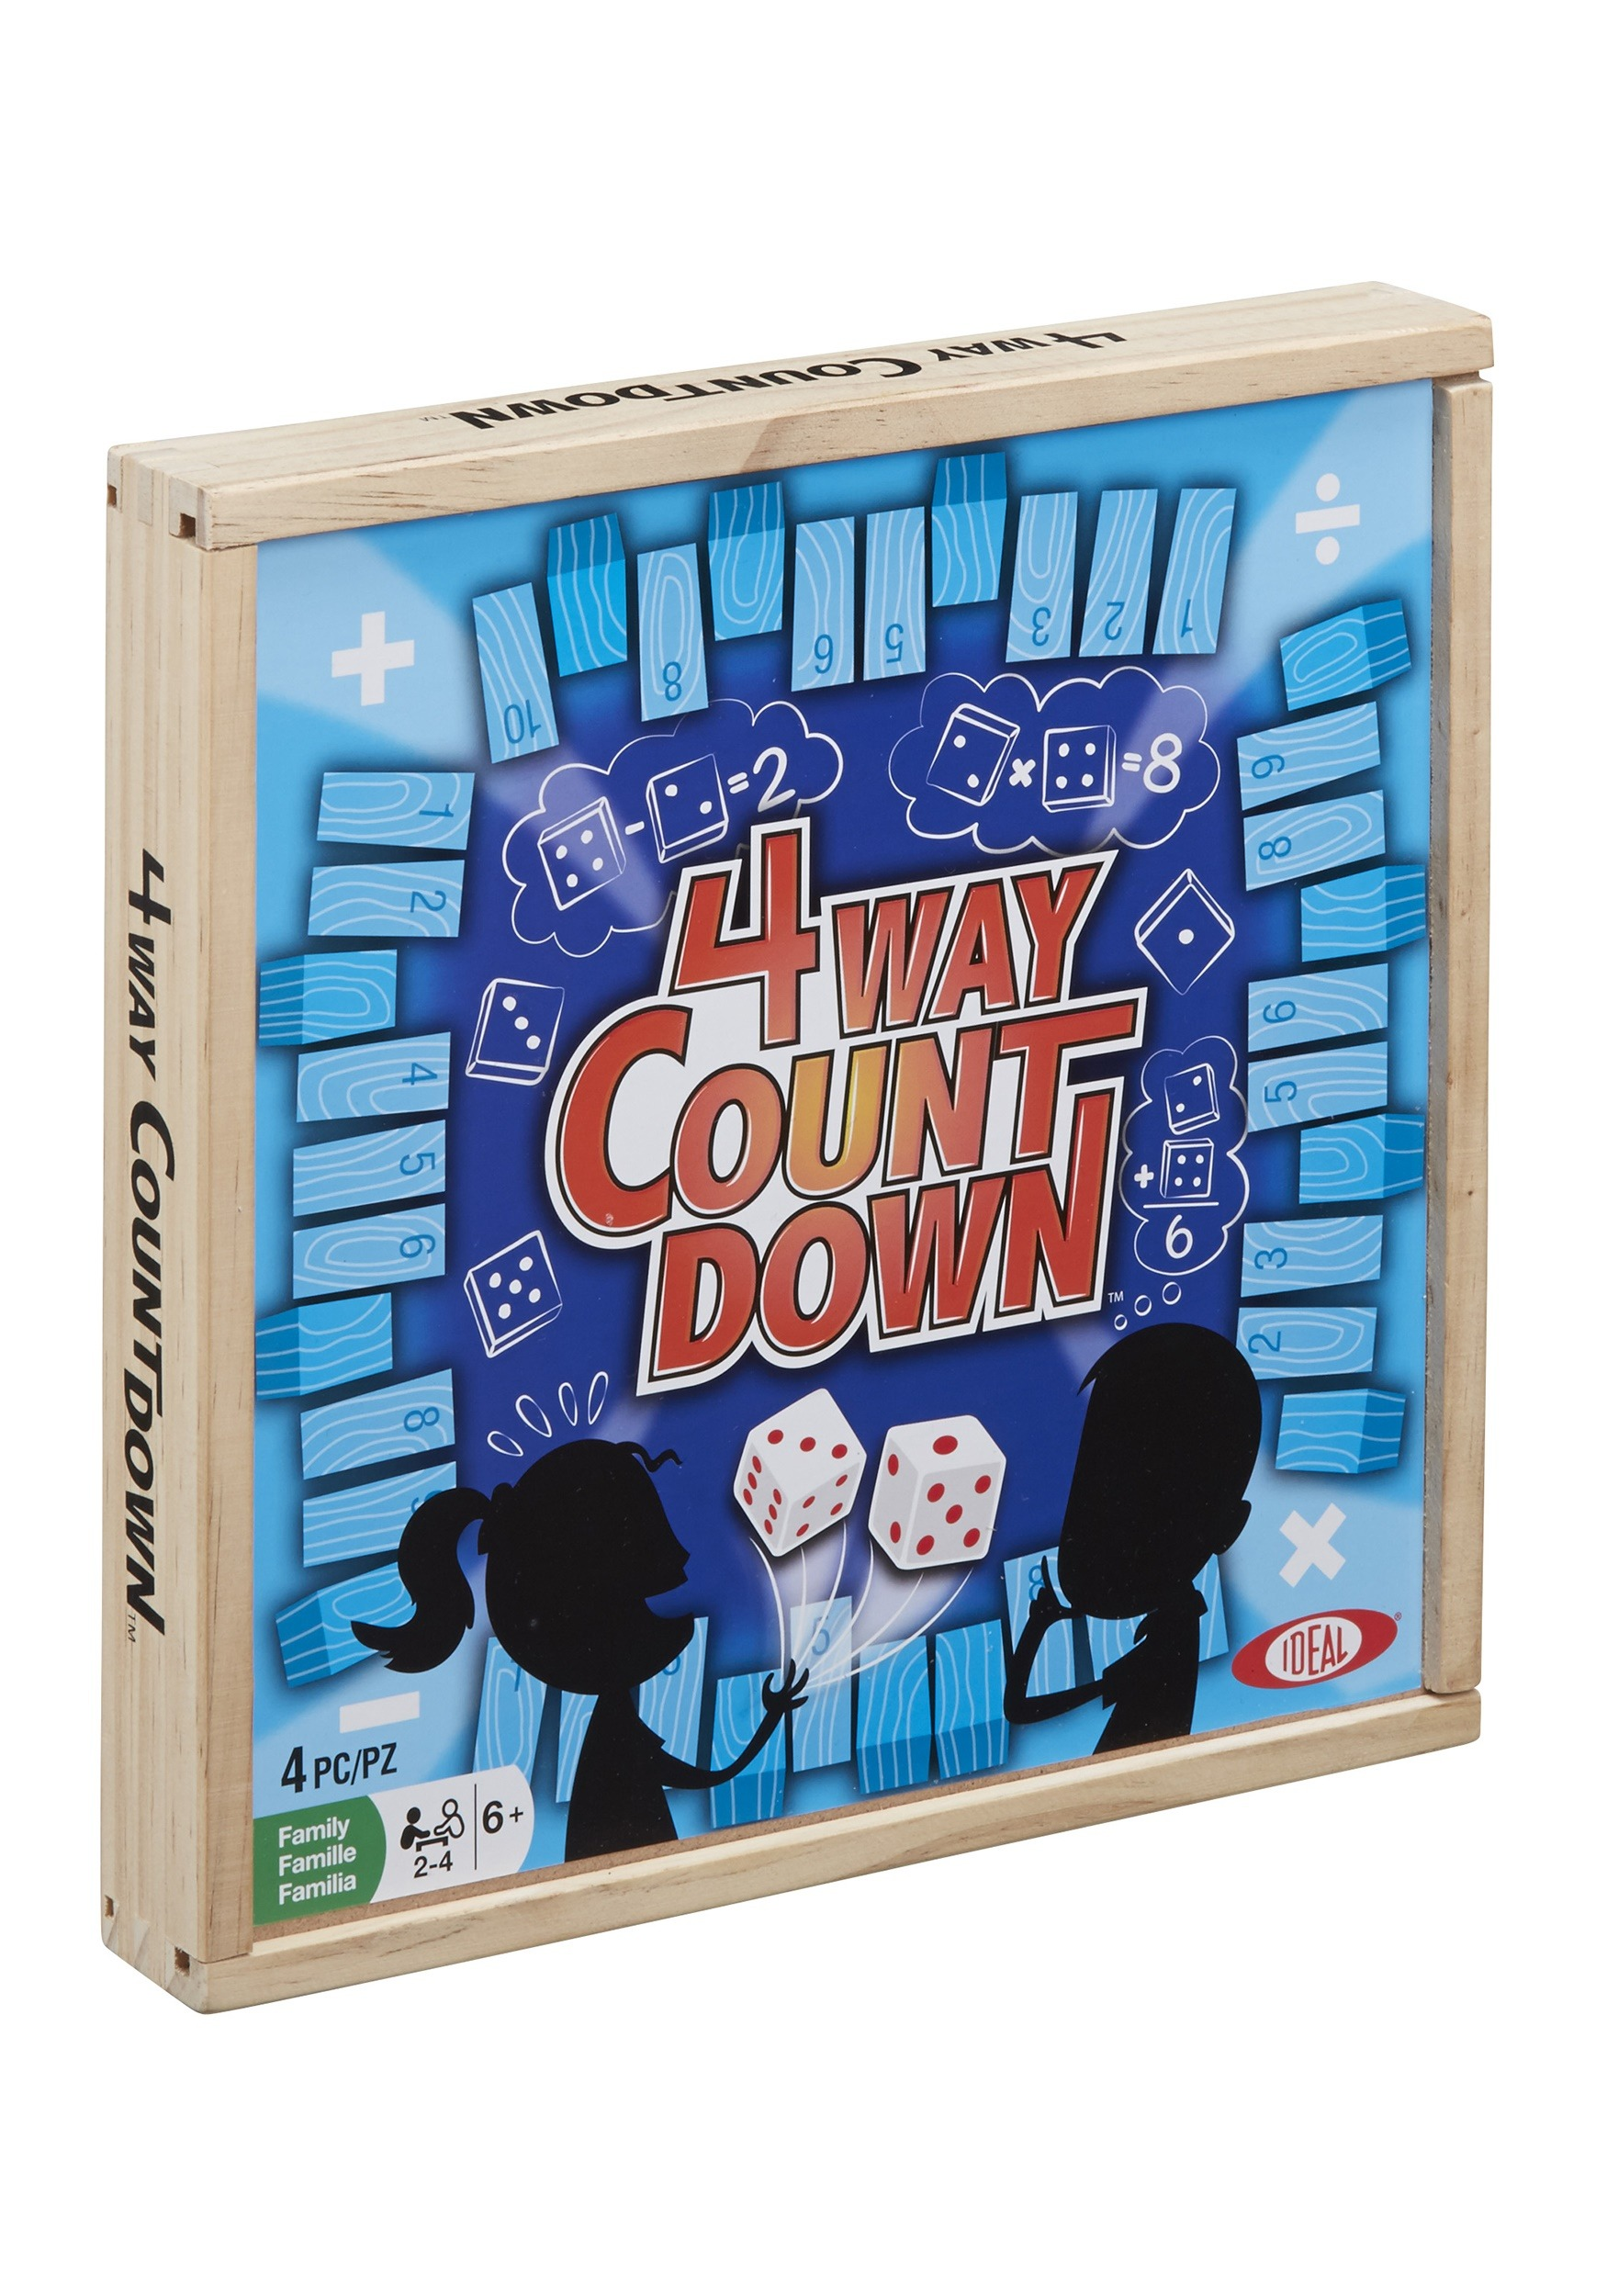 Ideal_4-Way_CountDown_Game